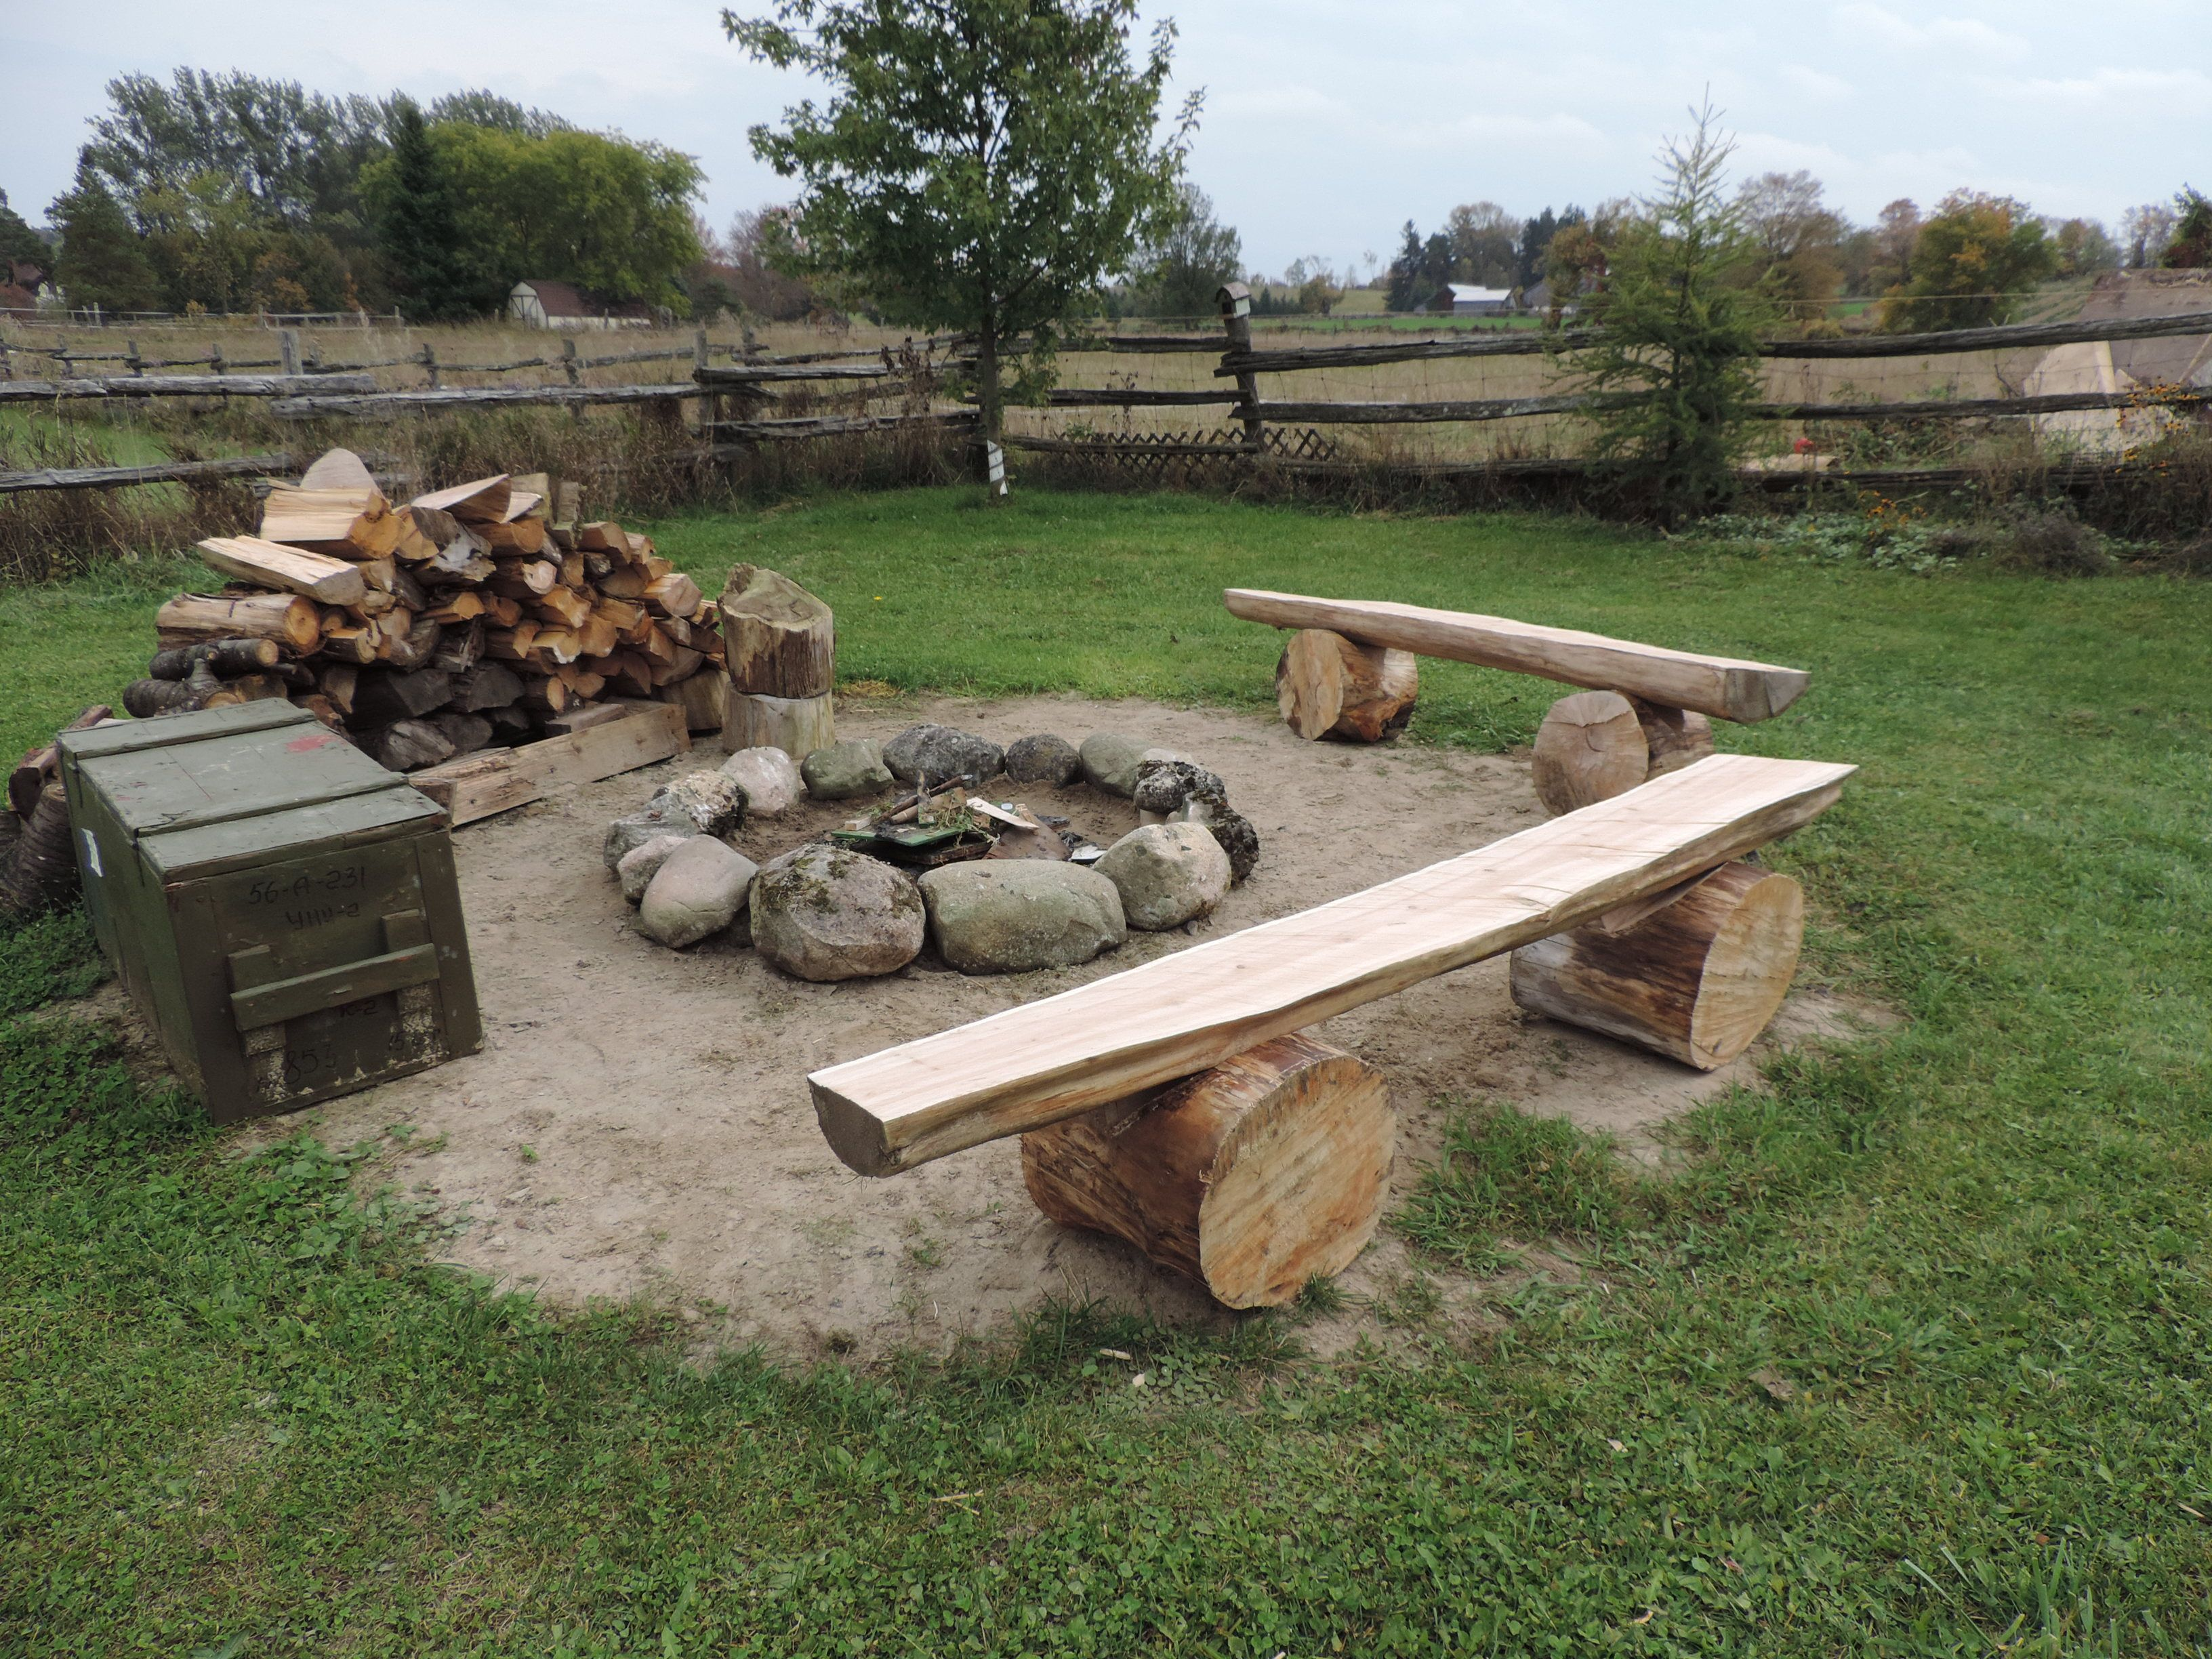 Our Home Made Fire Pit Benches From Cedar Ripped With A Chainsaw And Balanced On Two Cedar